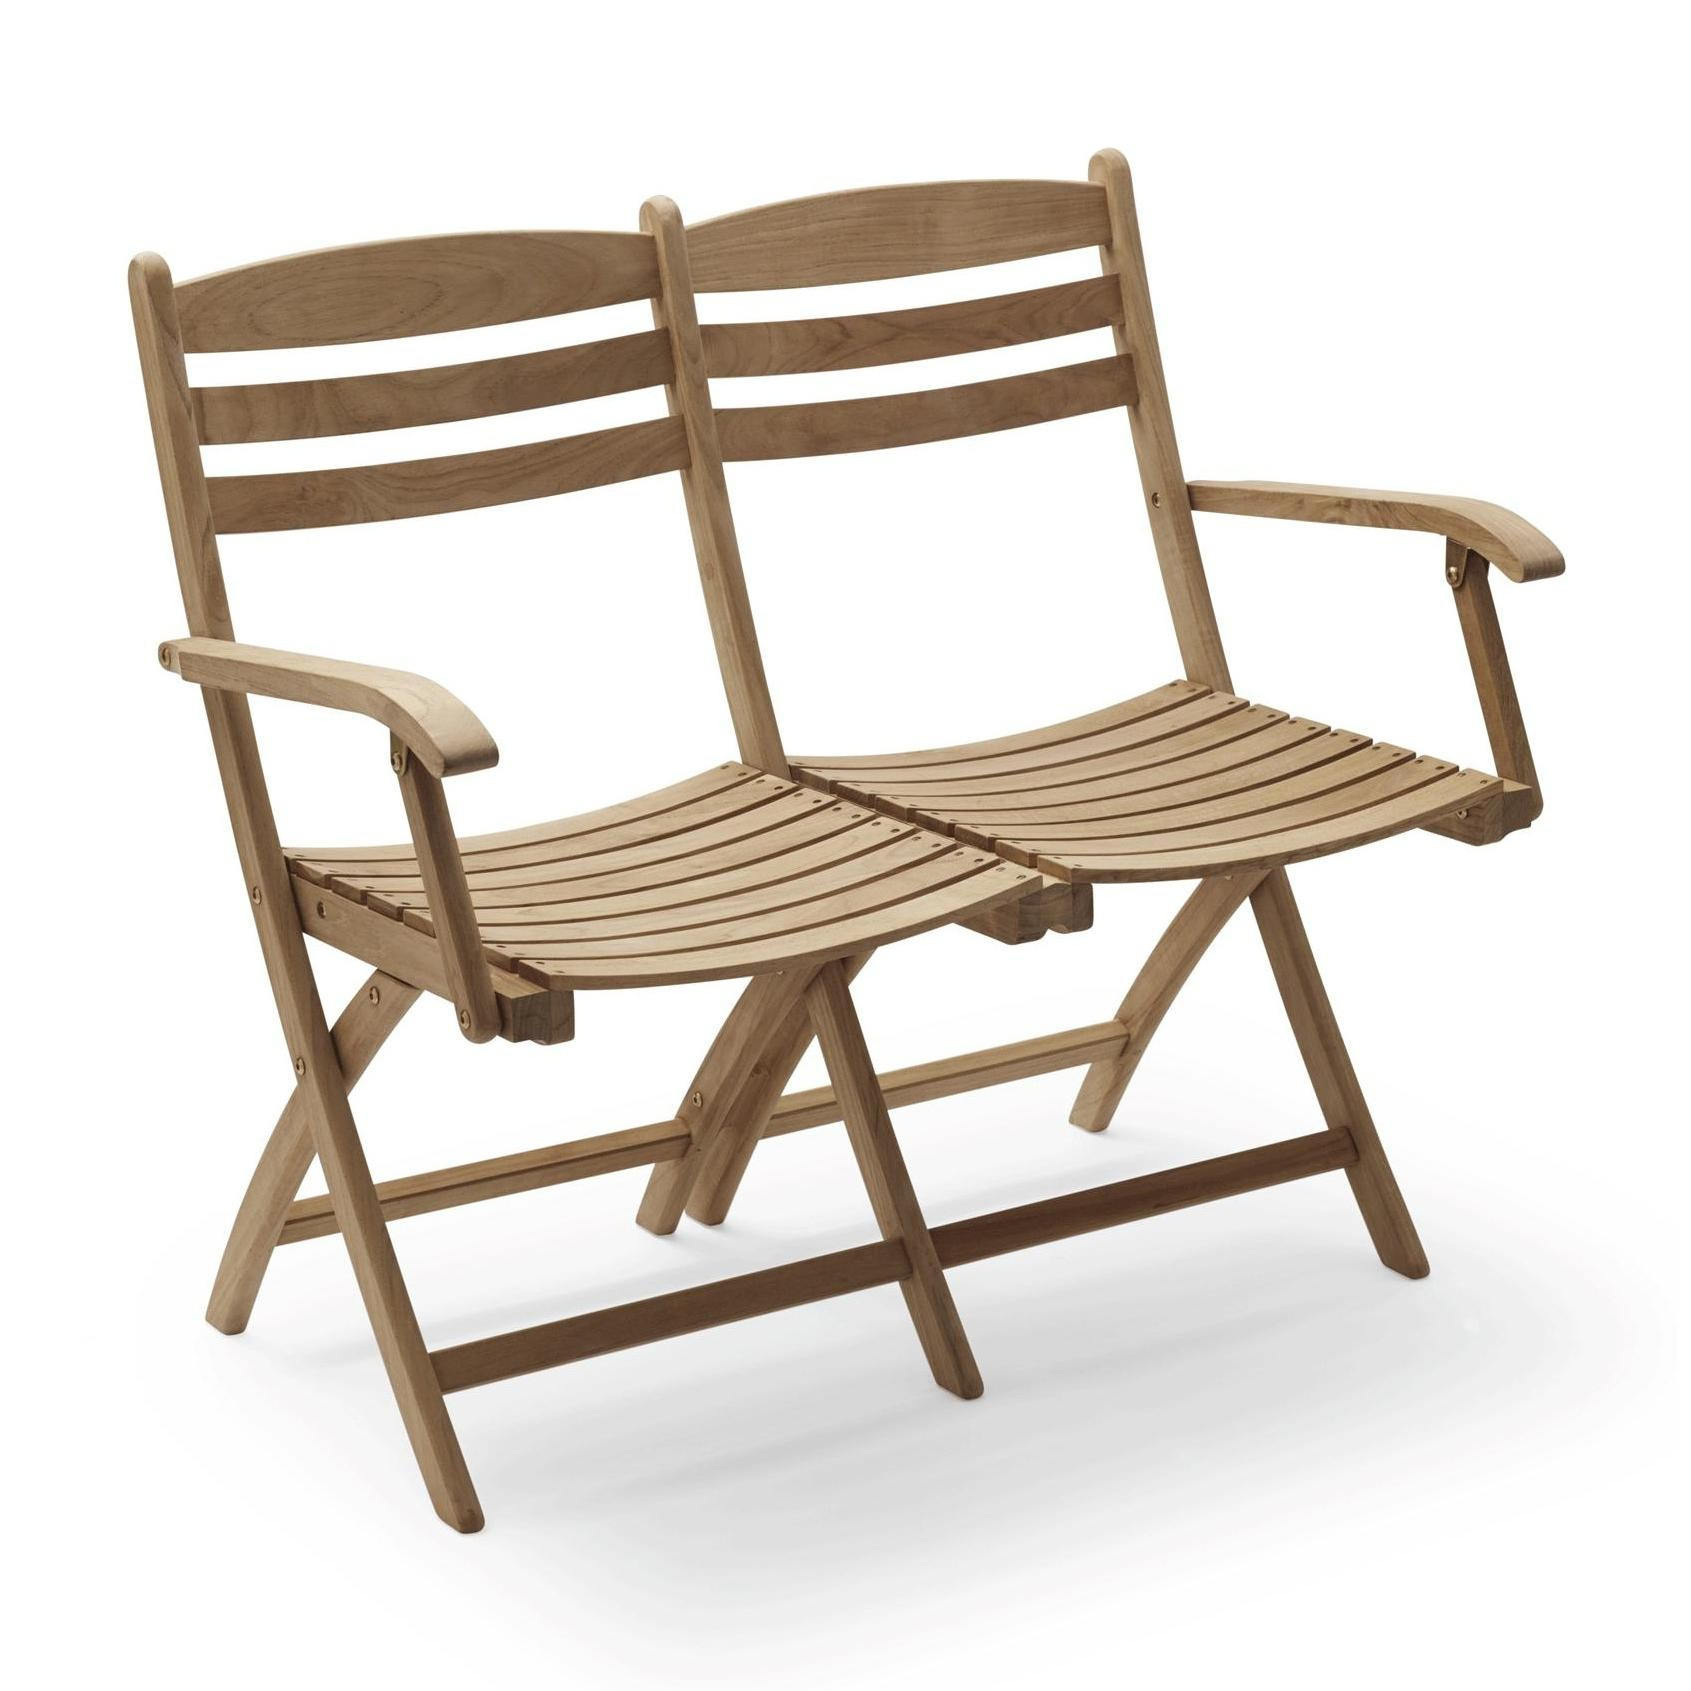 Phenomenal Selandia Outdoor 2 Seater Bench Chair 100Cm Gamerscity Chair Design For Home Gamerscityorg